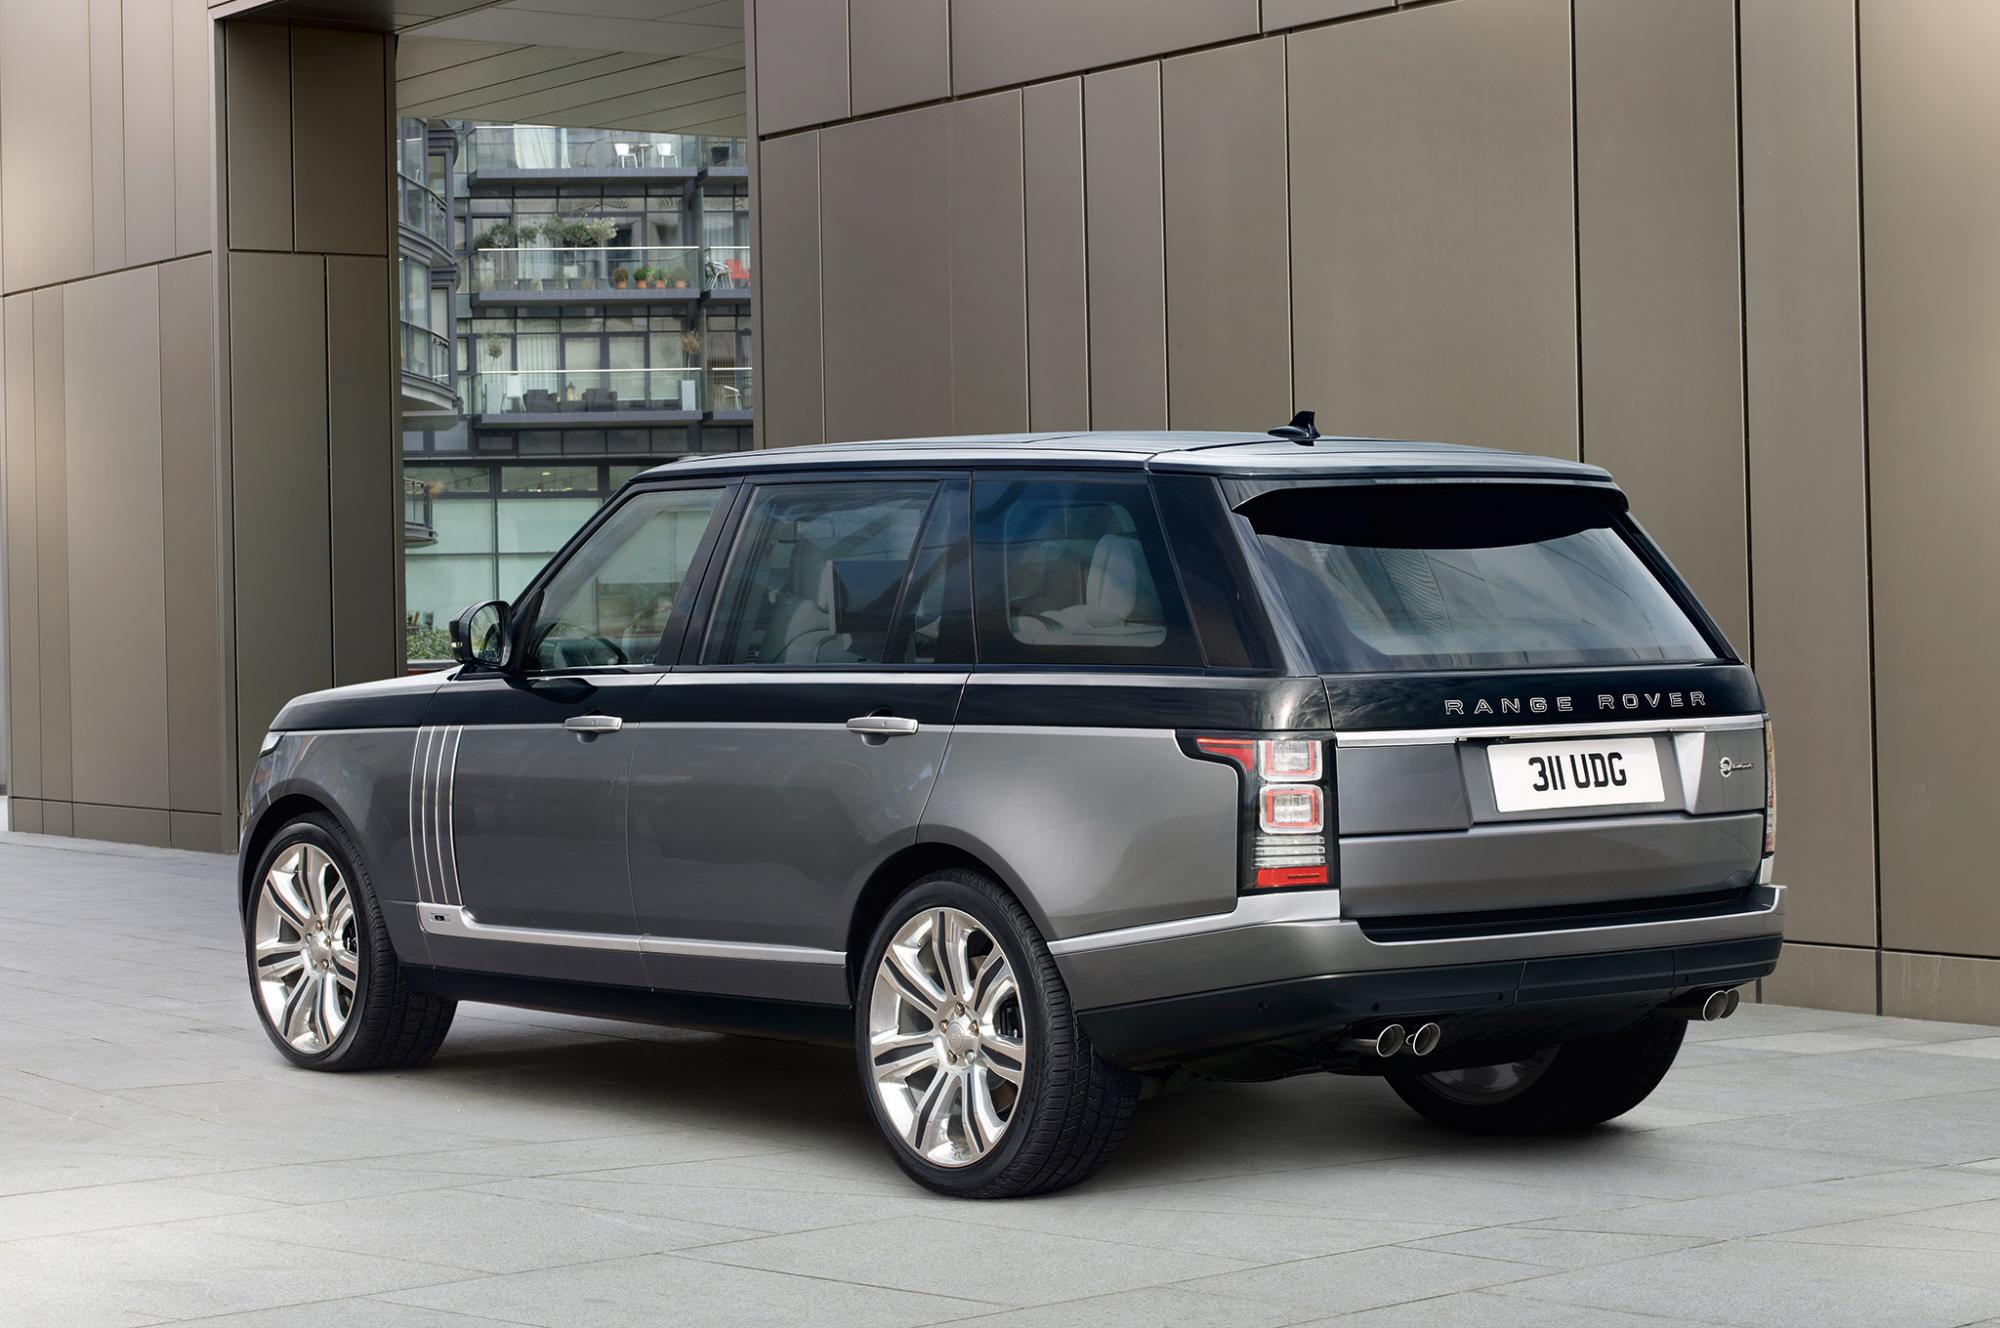 Land Rover Vs Range Rover Comparison Land Rover Range Rover 2016 Vs Lexus Lx